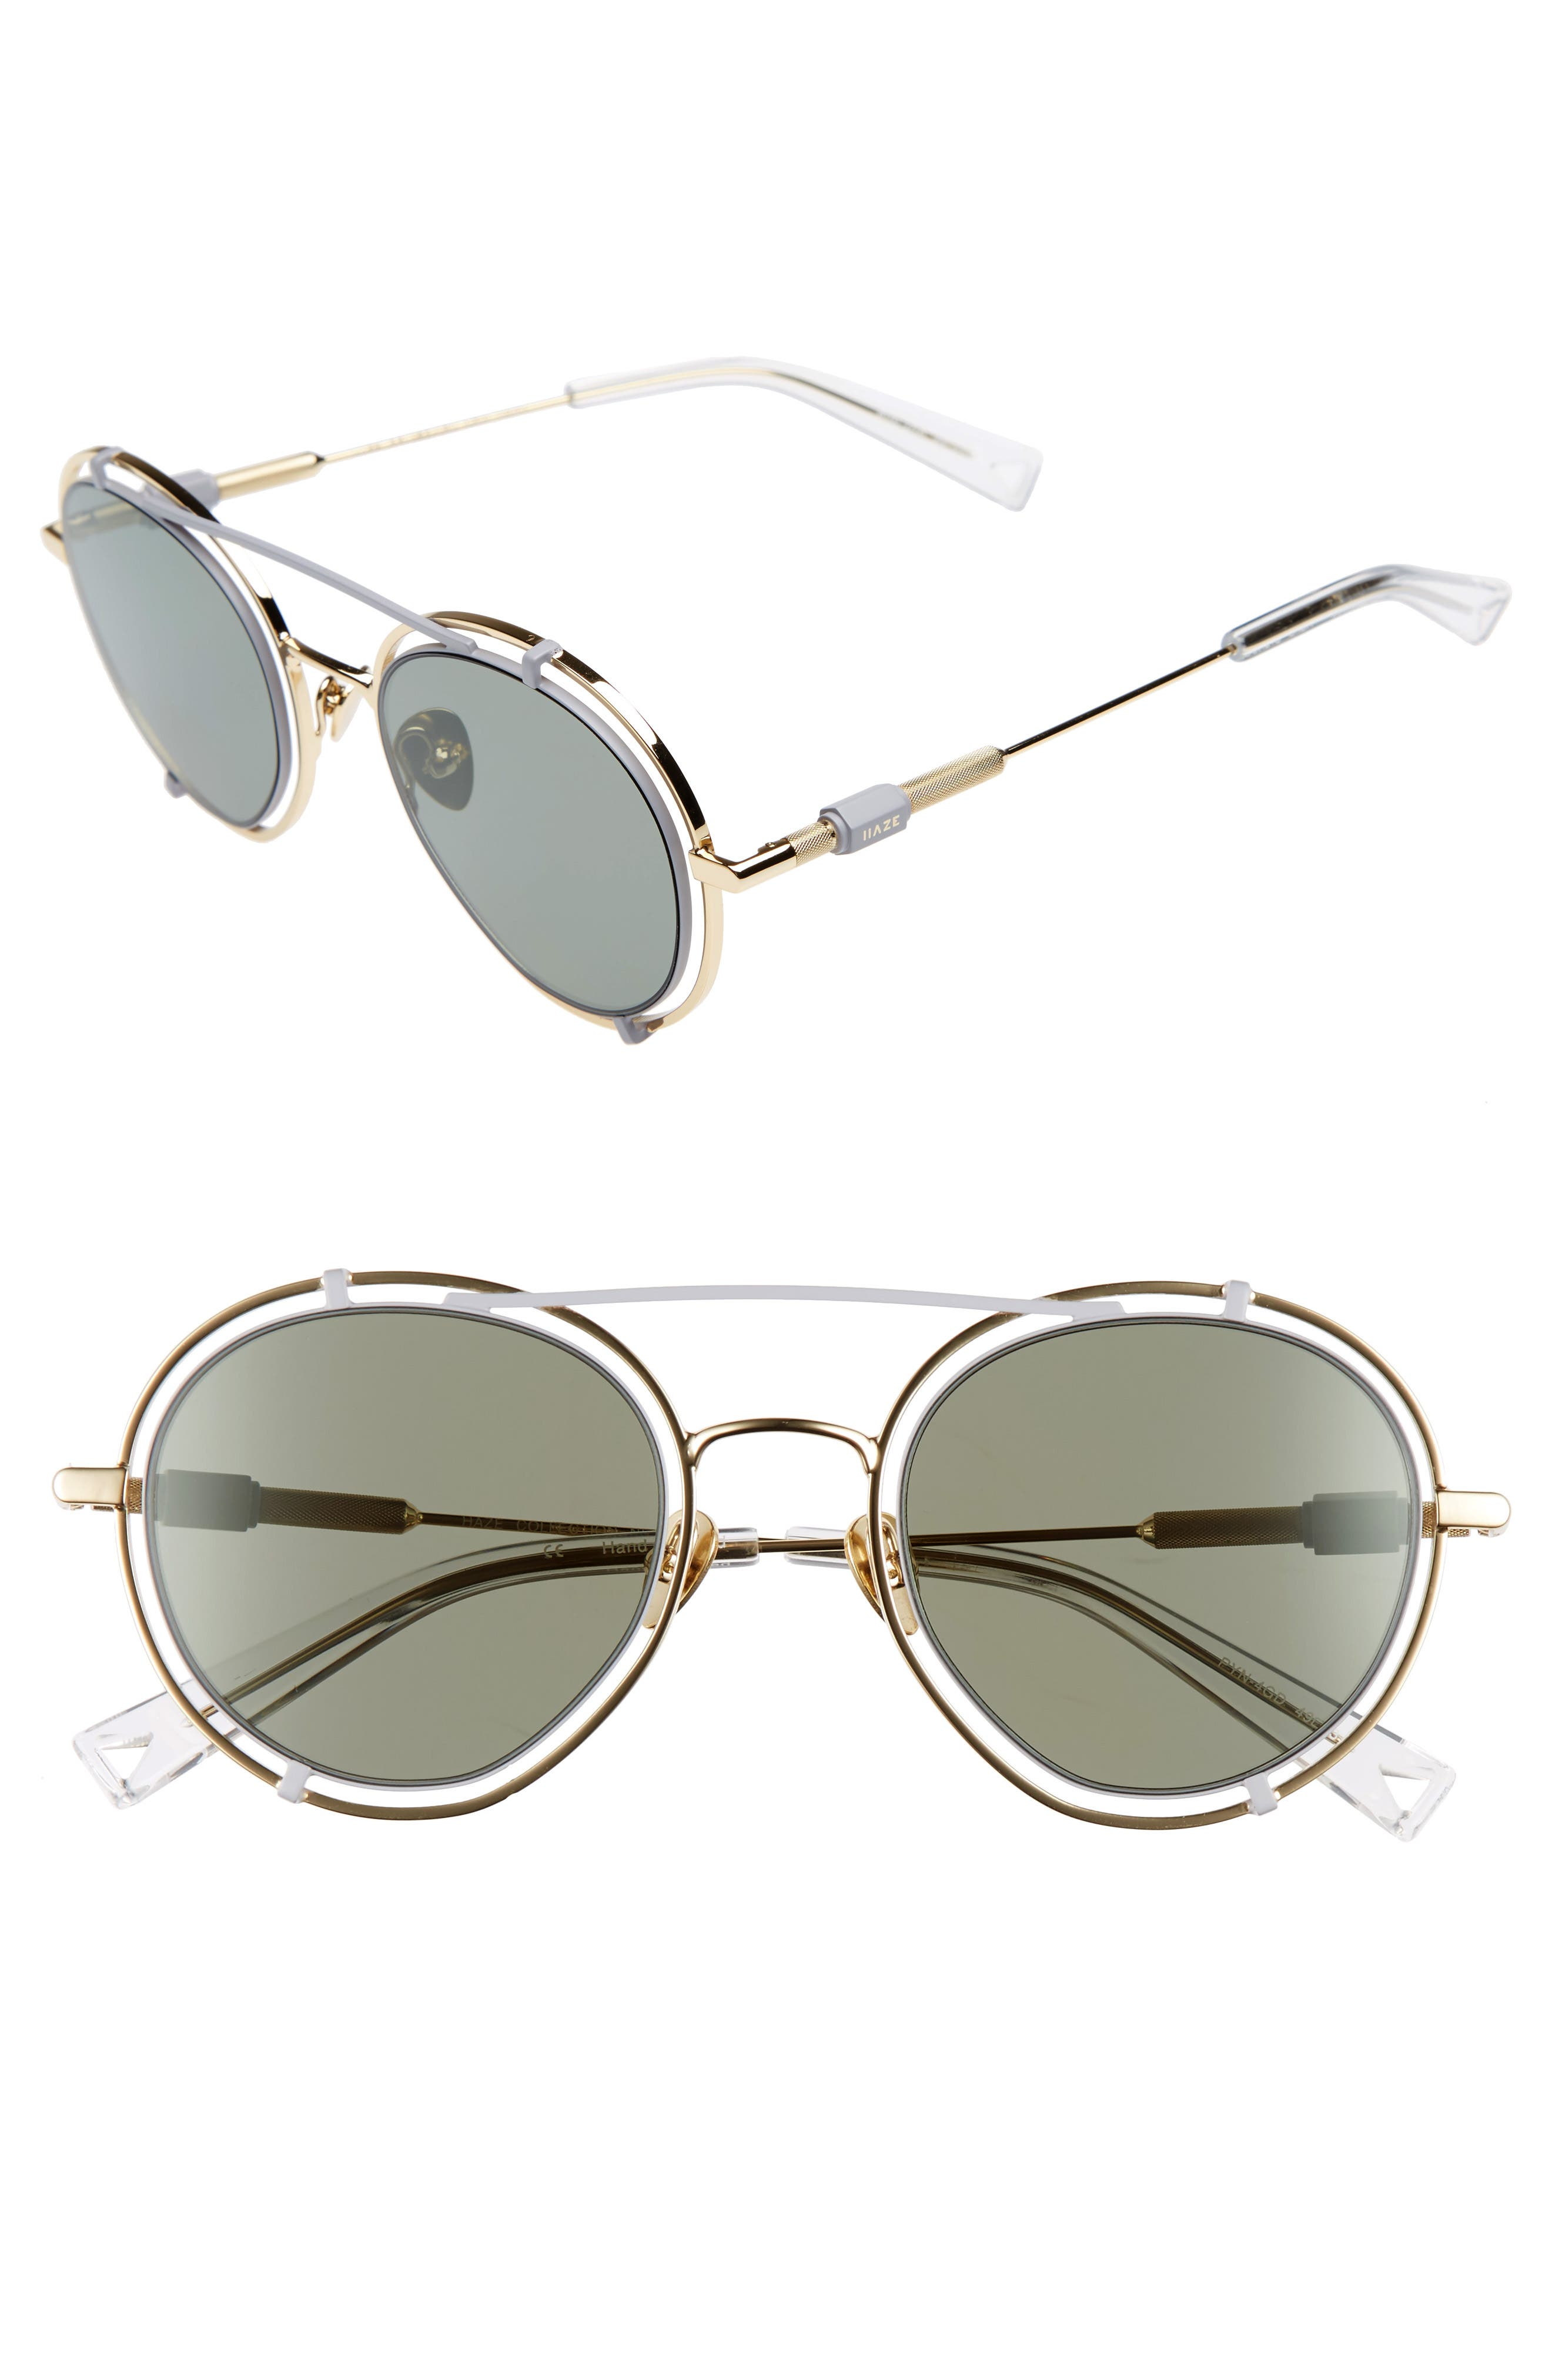 Pyn 55mm Mirrored Sunglasses,                         Main,                         color, Golden